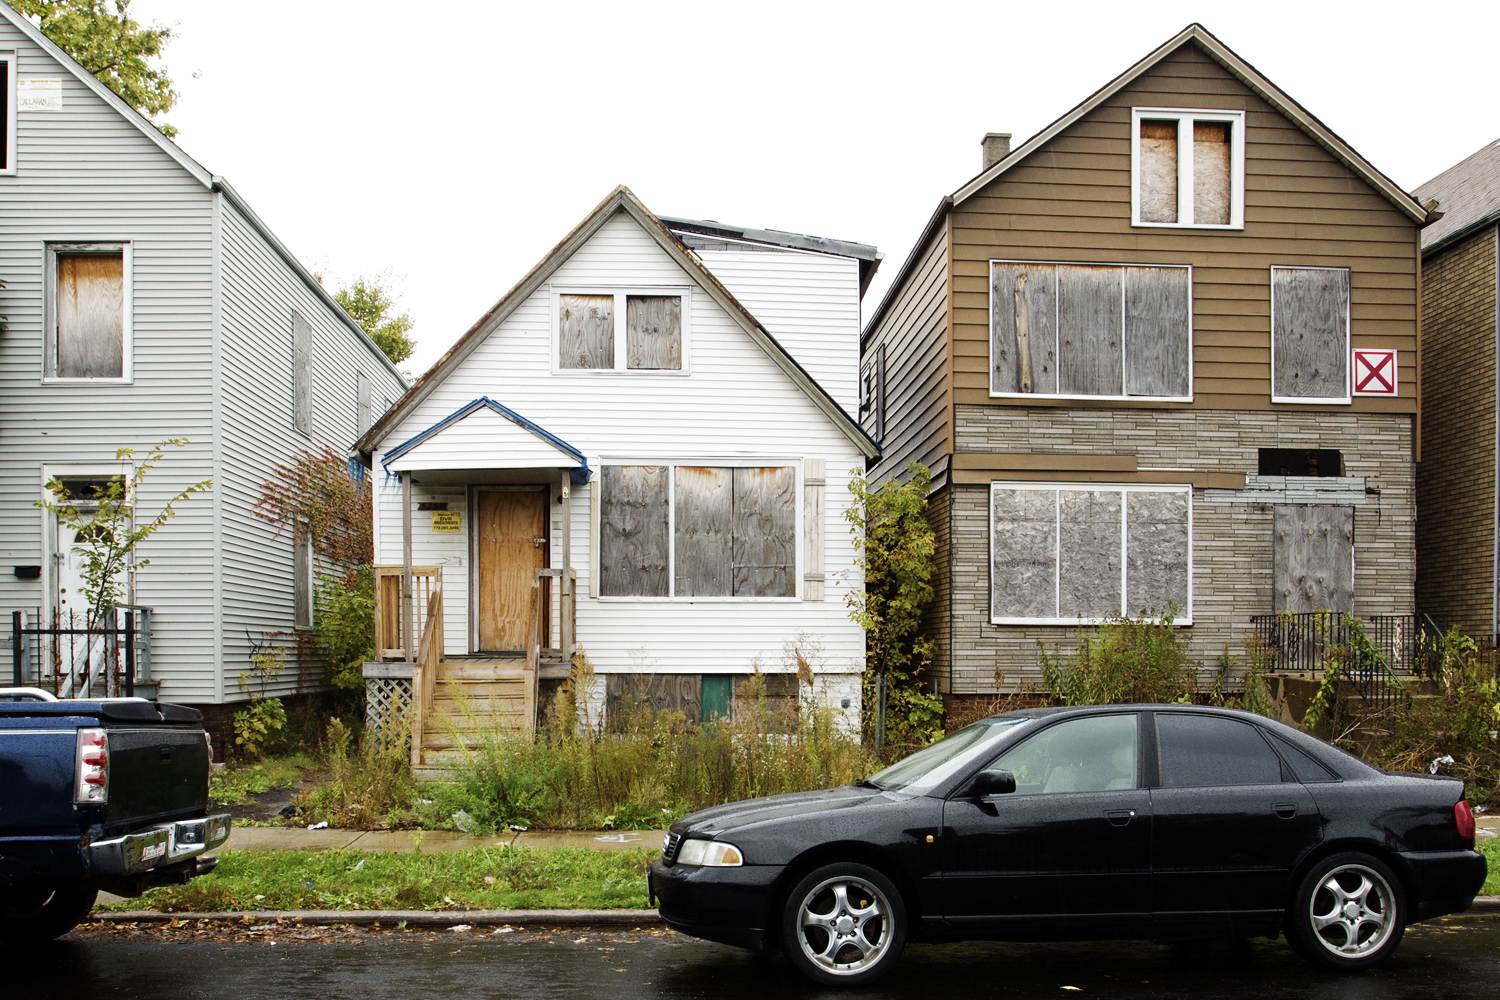 Breaking News: Vacant Homes Increase by 2.1 Million